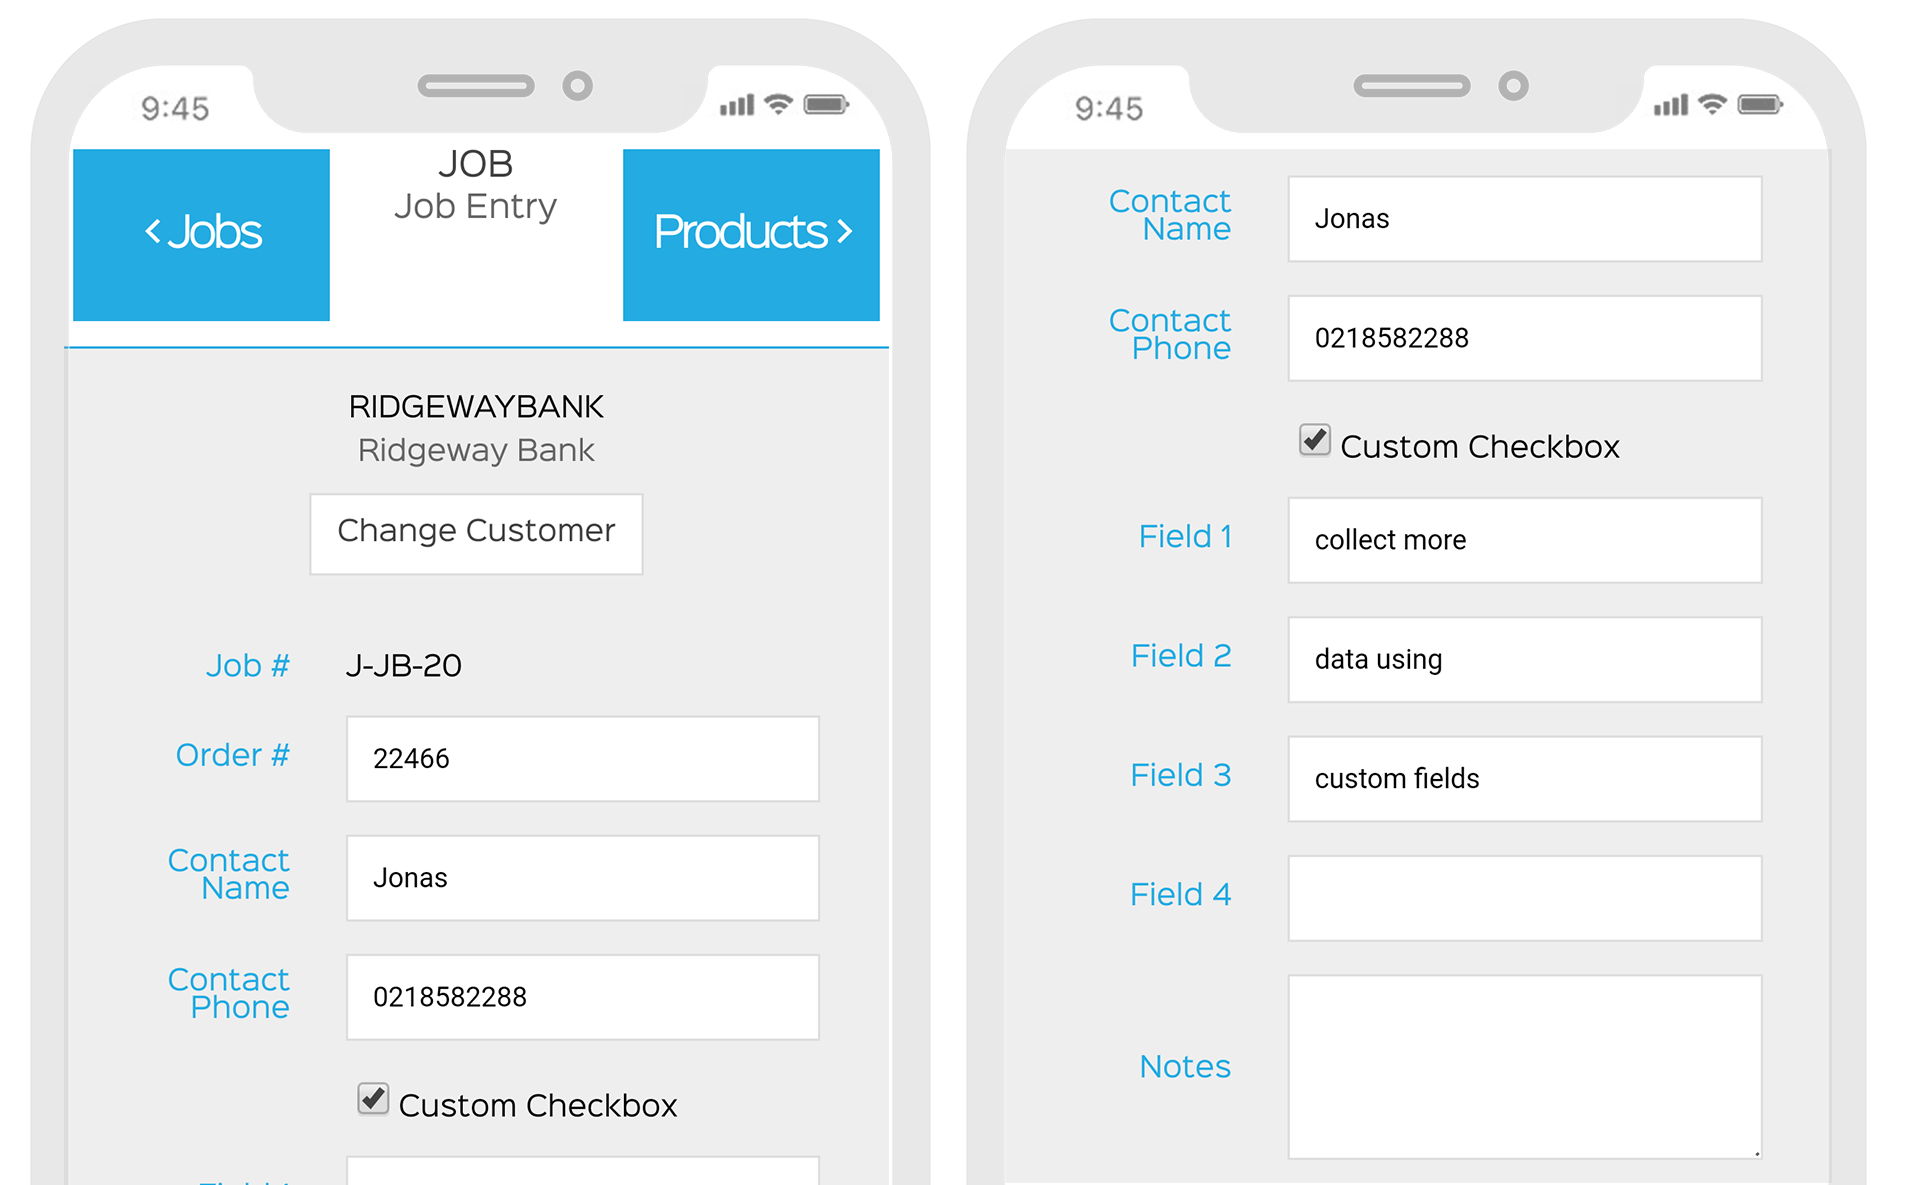 job tracking with EZEMobile. Create a new job anywhere